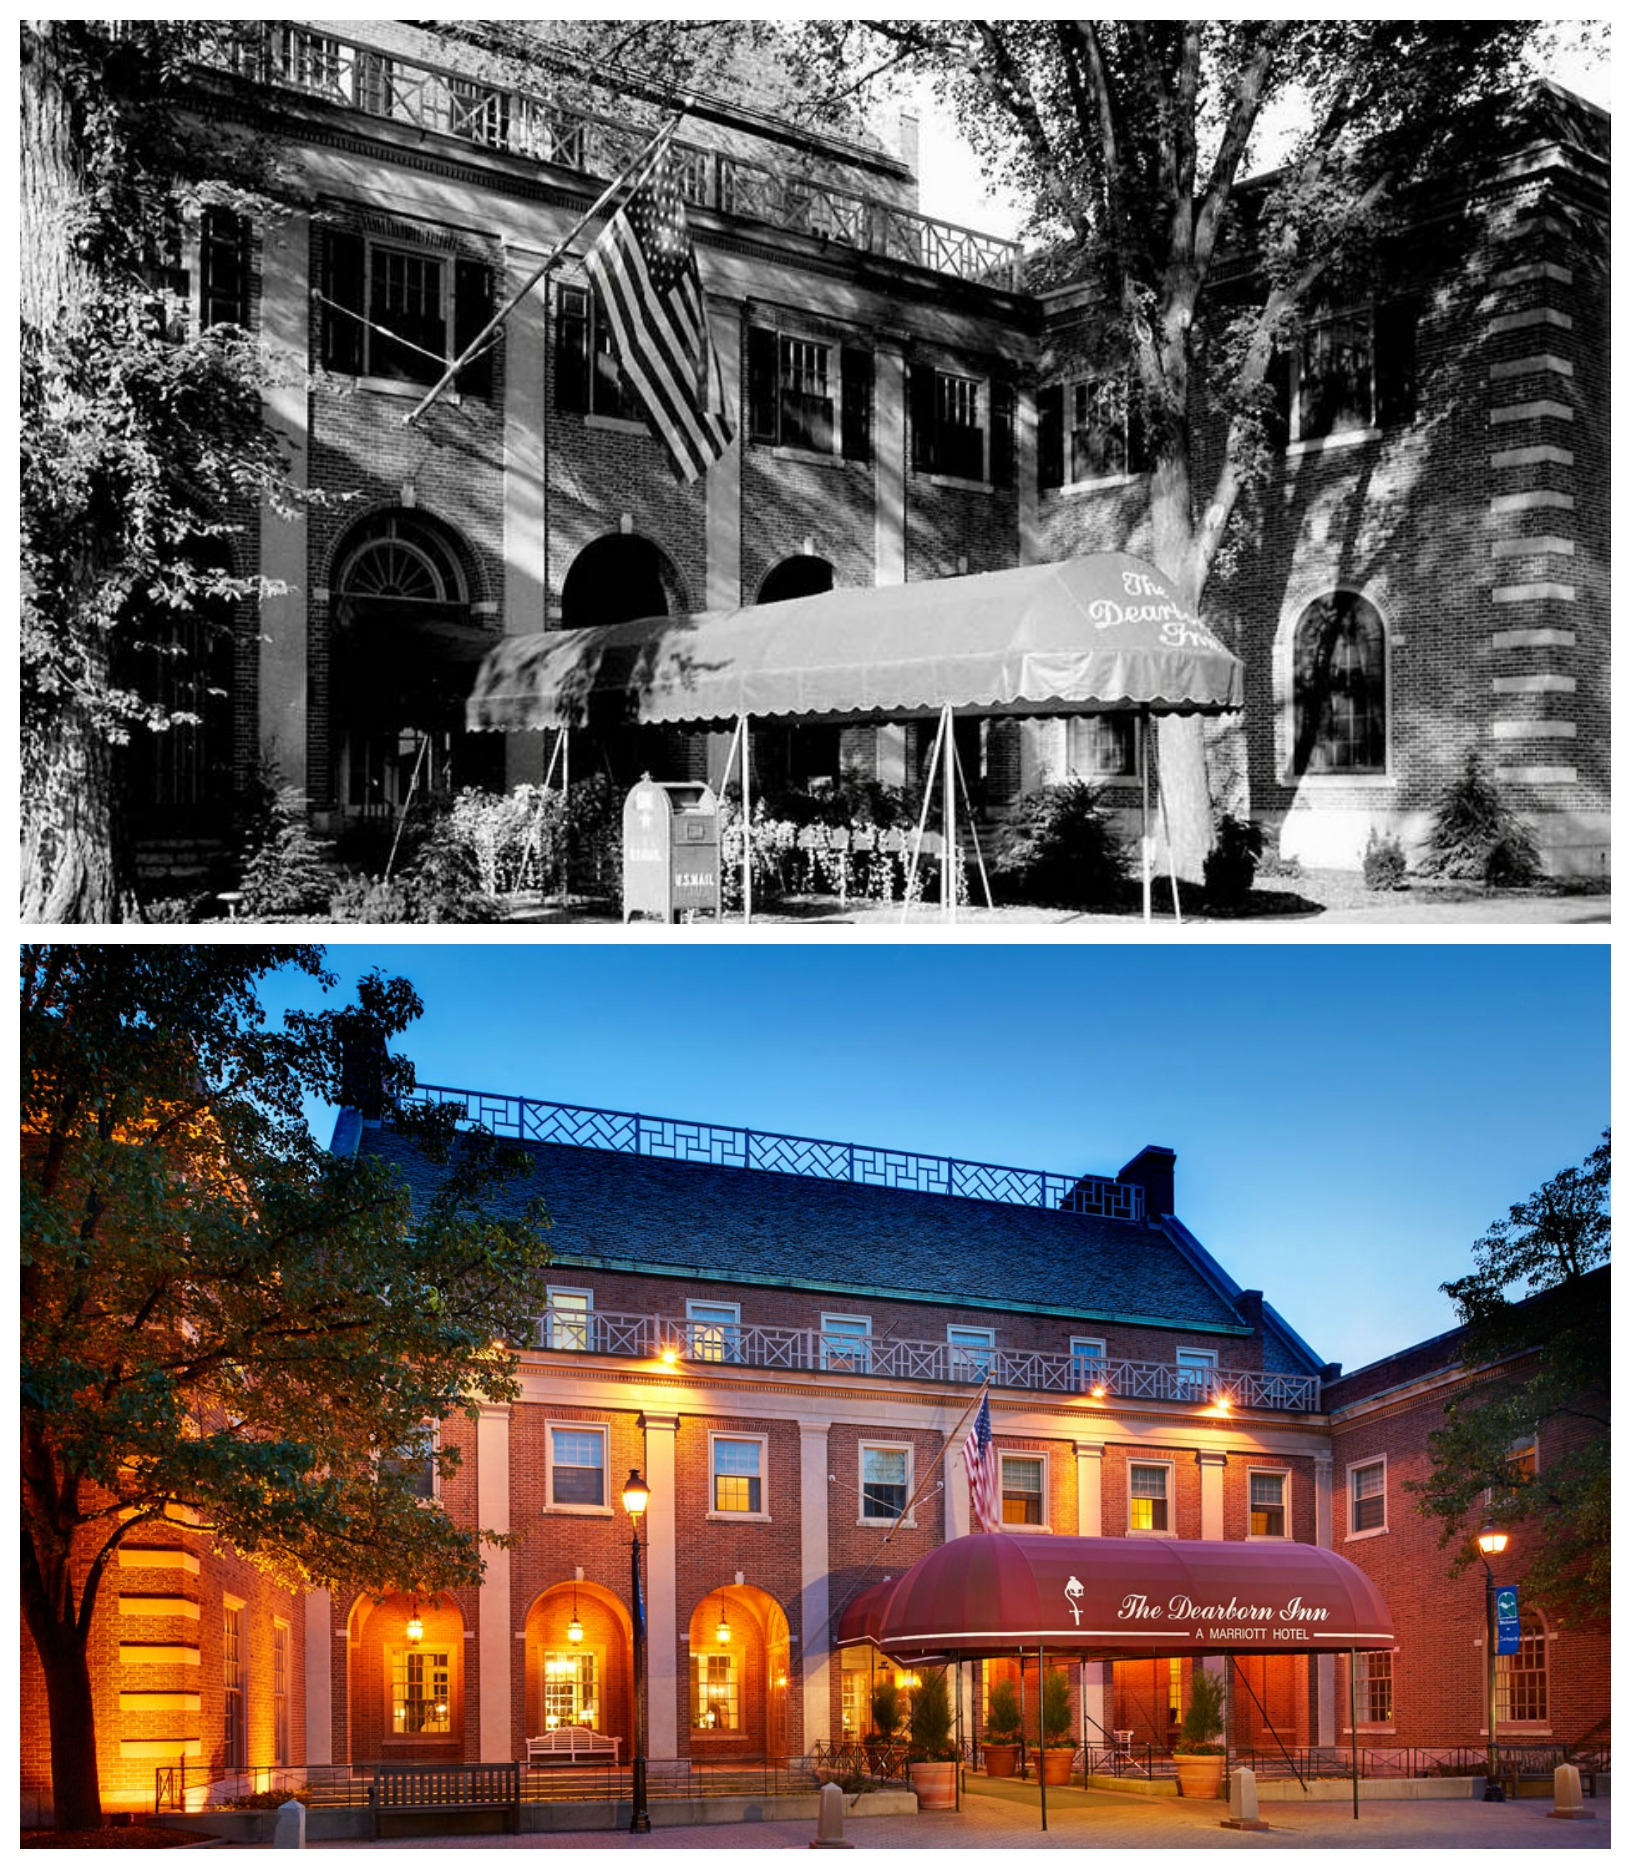 Compare the Dearborn Inn before and present